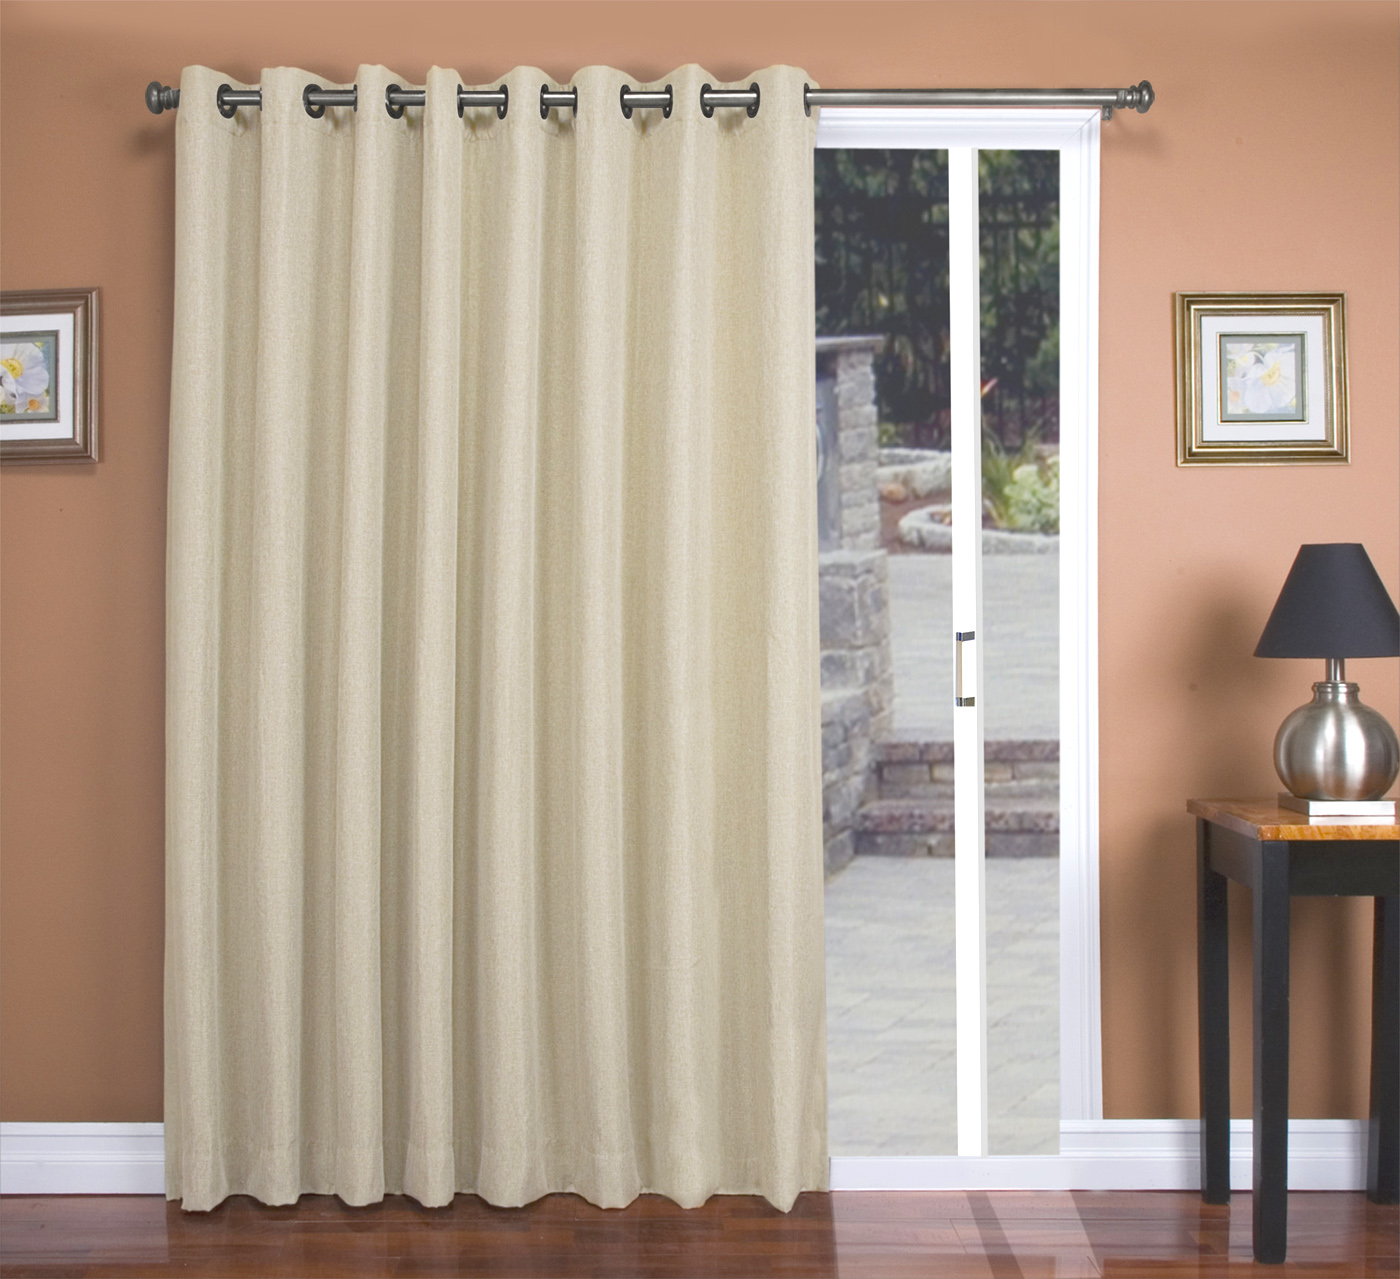 patio door curtains also insulated drapes for sliding doors also contemporary curtains for sliding doors